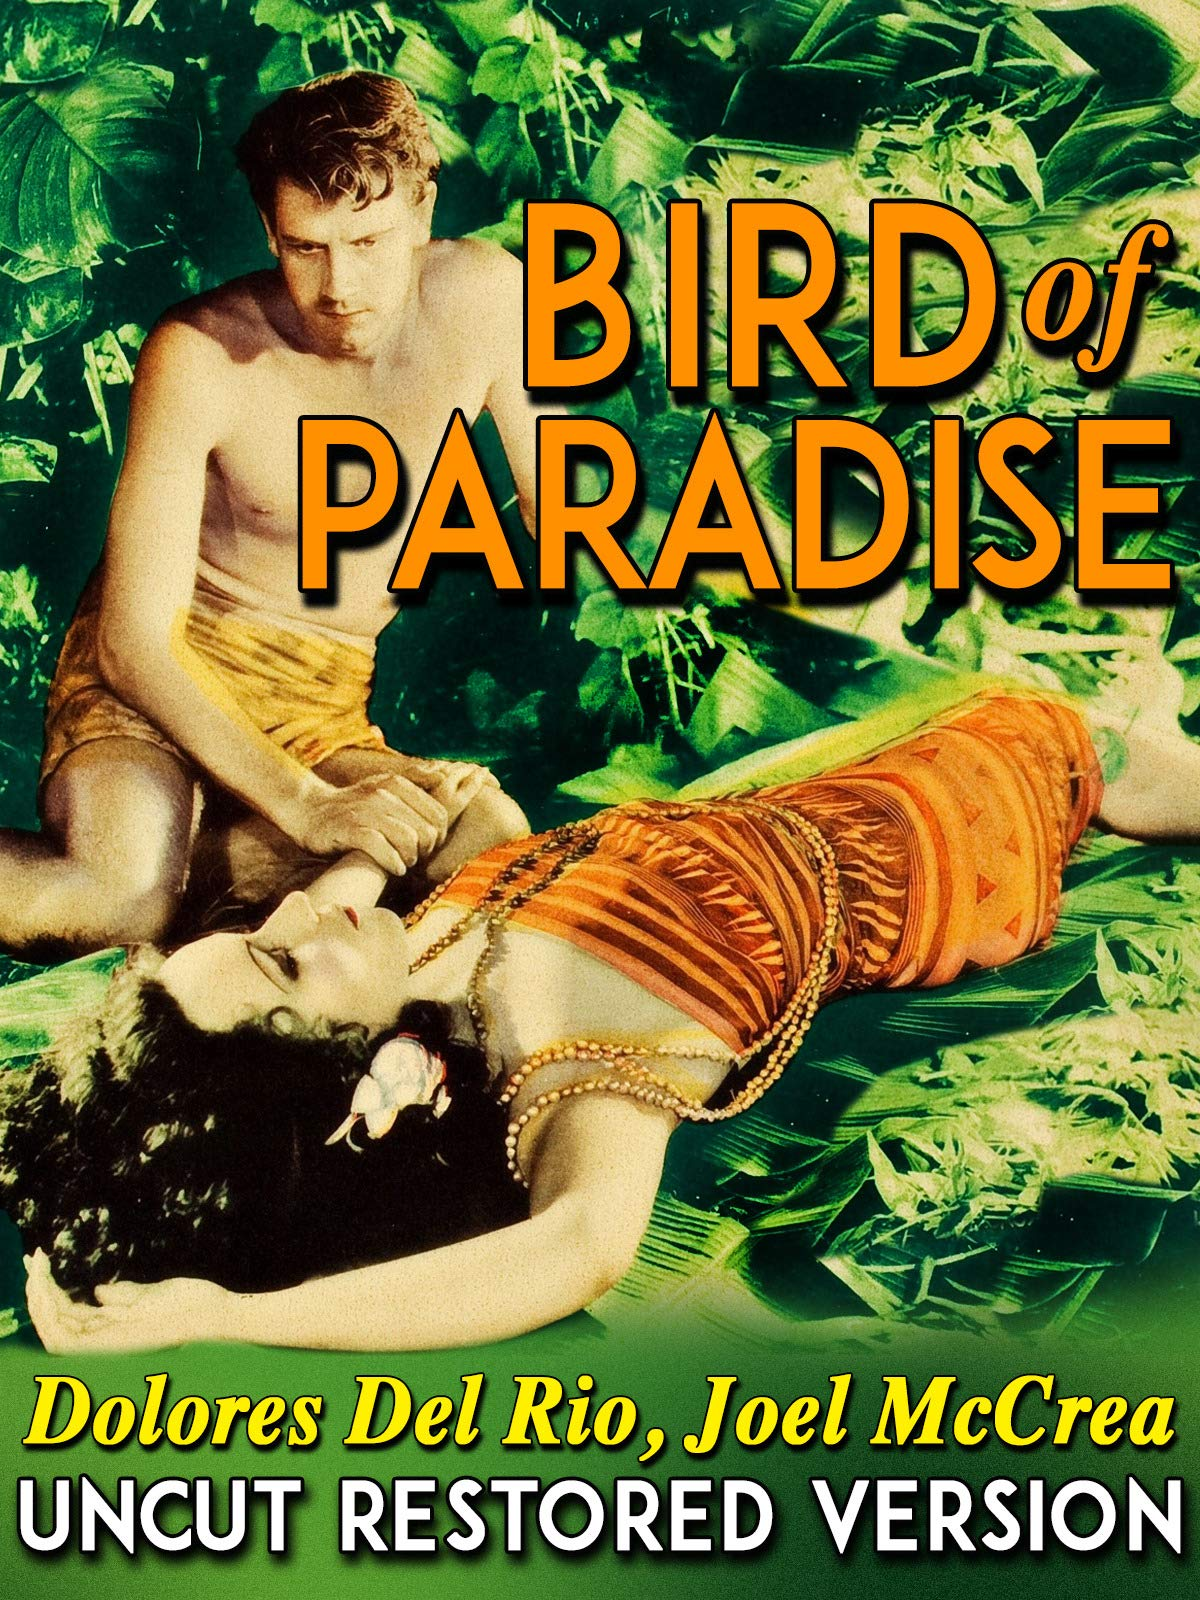 Bird Of Paradise - Dolores Del Rio, Joel McCrea, Uncut Restored Version